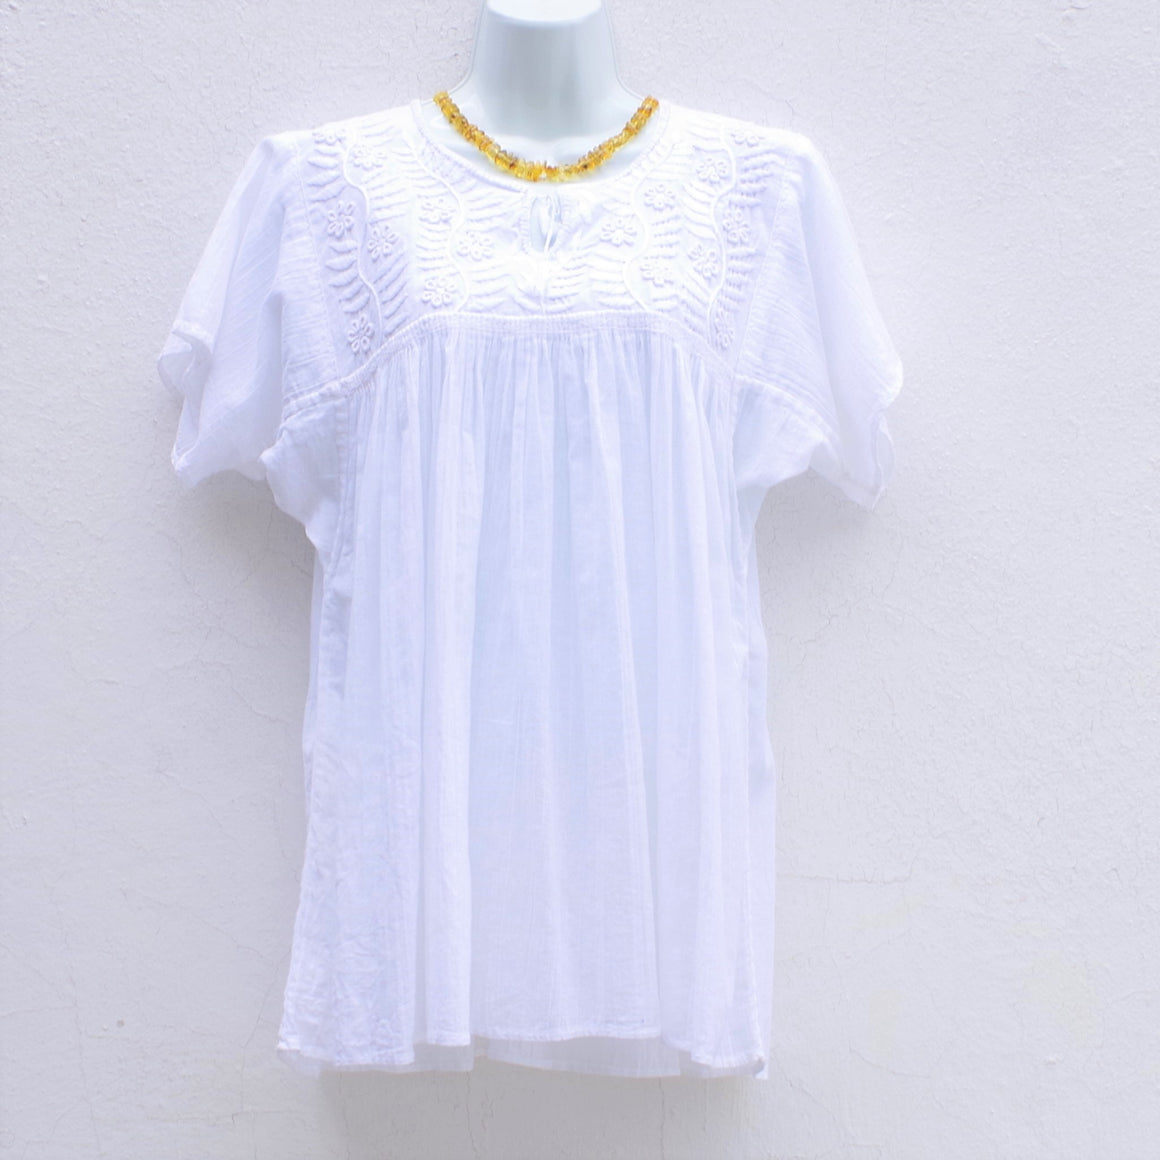 Mayan Copal White Mexican Huipil Blouse Hand Embroidery from Chiapas M Size